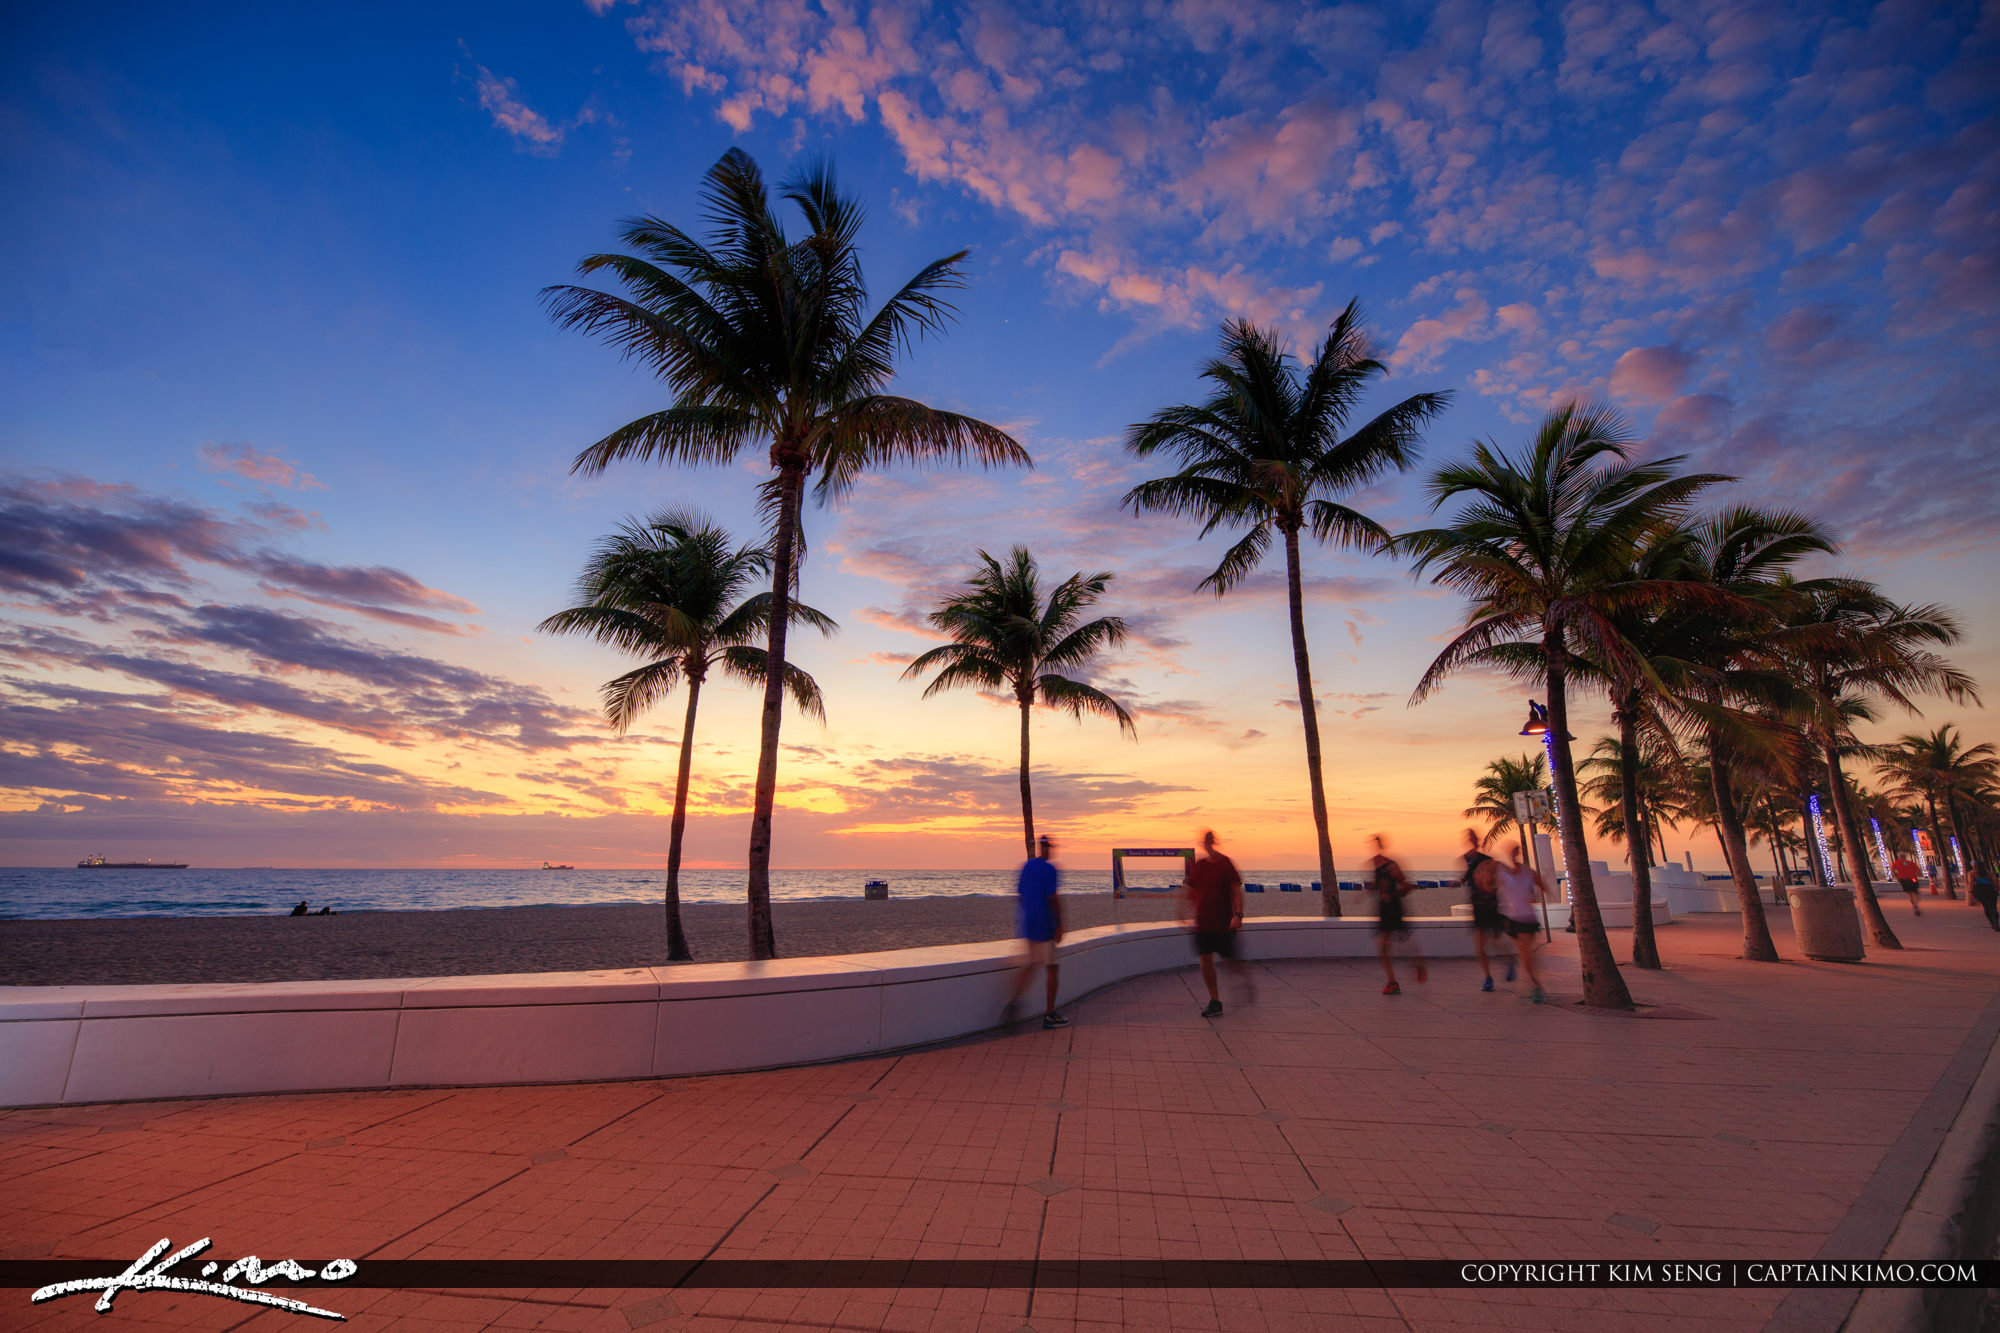 Morning Excercise Fort Lauderdale Las Olas Florida at Beach